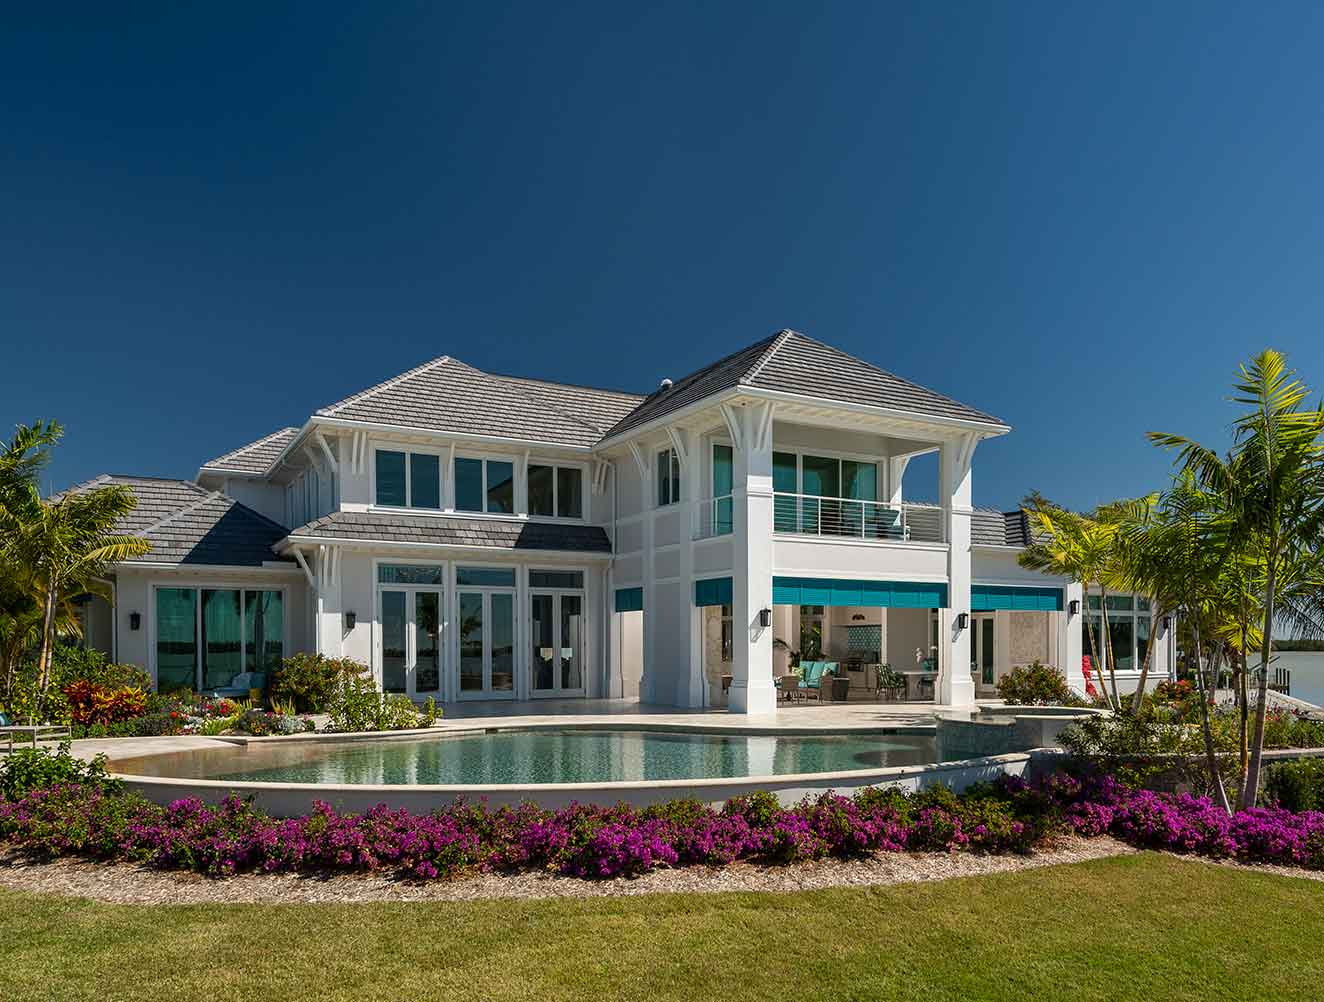 Exterior Pool and Architectural Flourishes at Caxambas Residence in Naples Florida, single family home designed by Kukk Architecture & Design Naples Architecture Firm